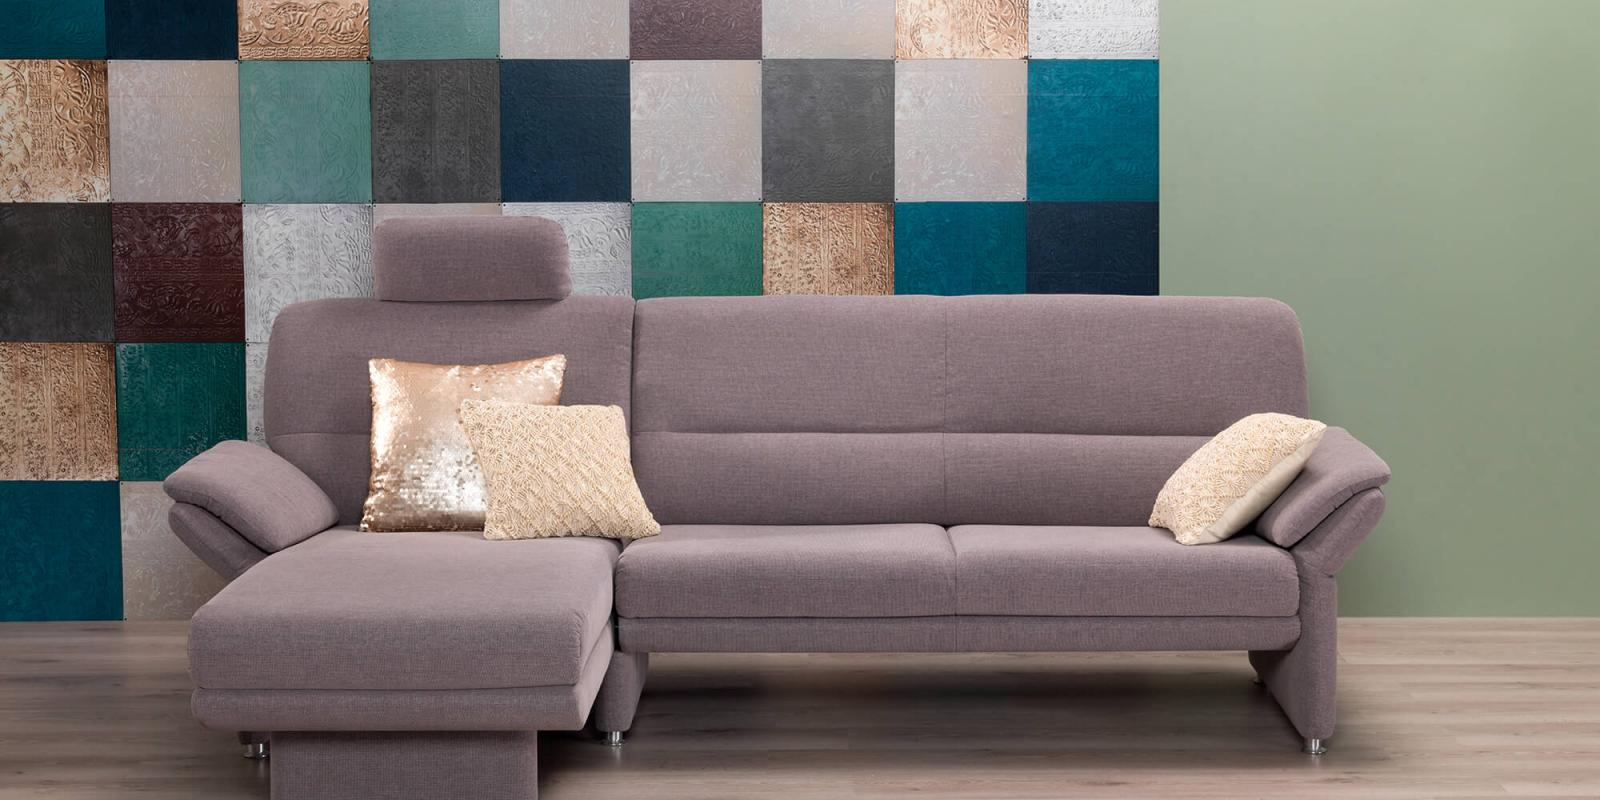 horst collection grimsel sofa design moebel beige stoff